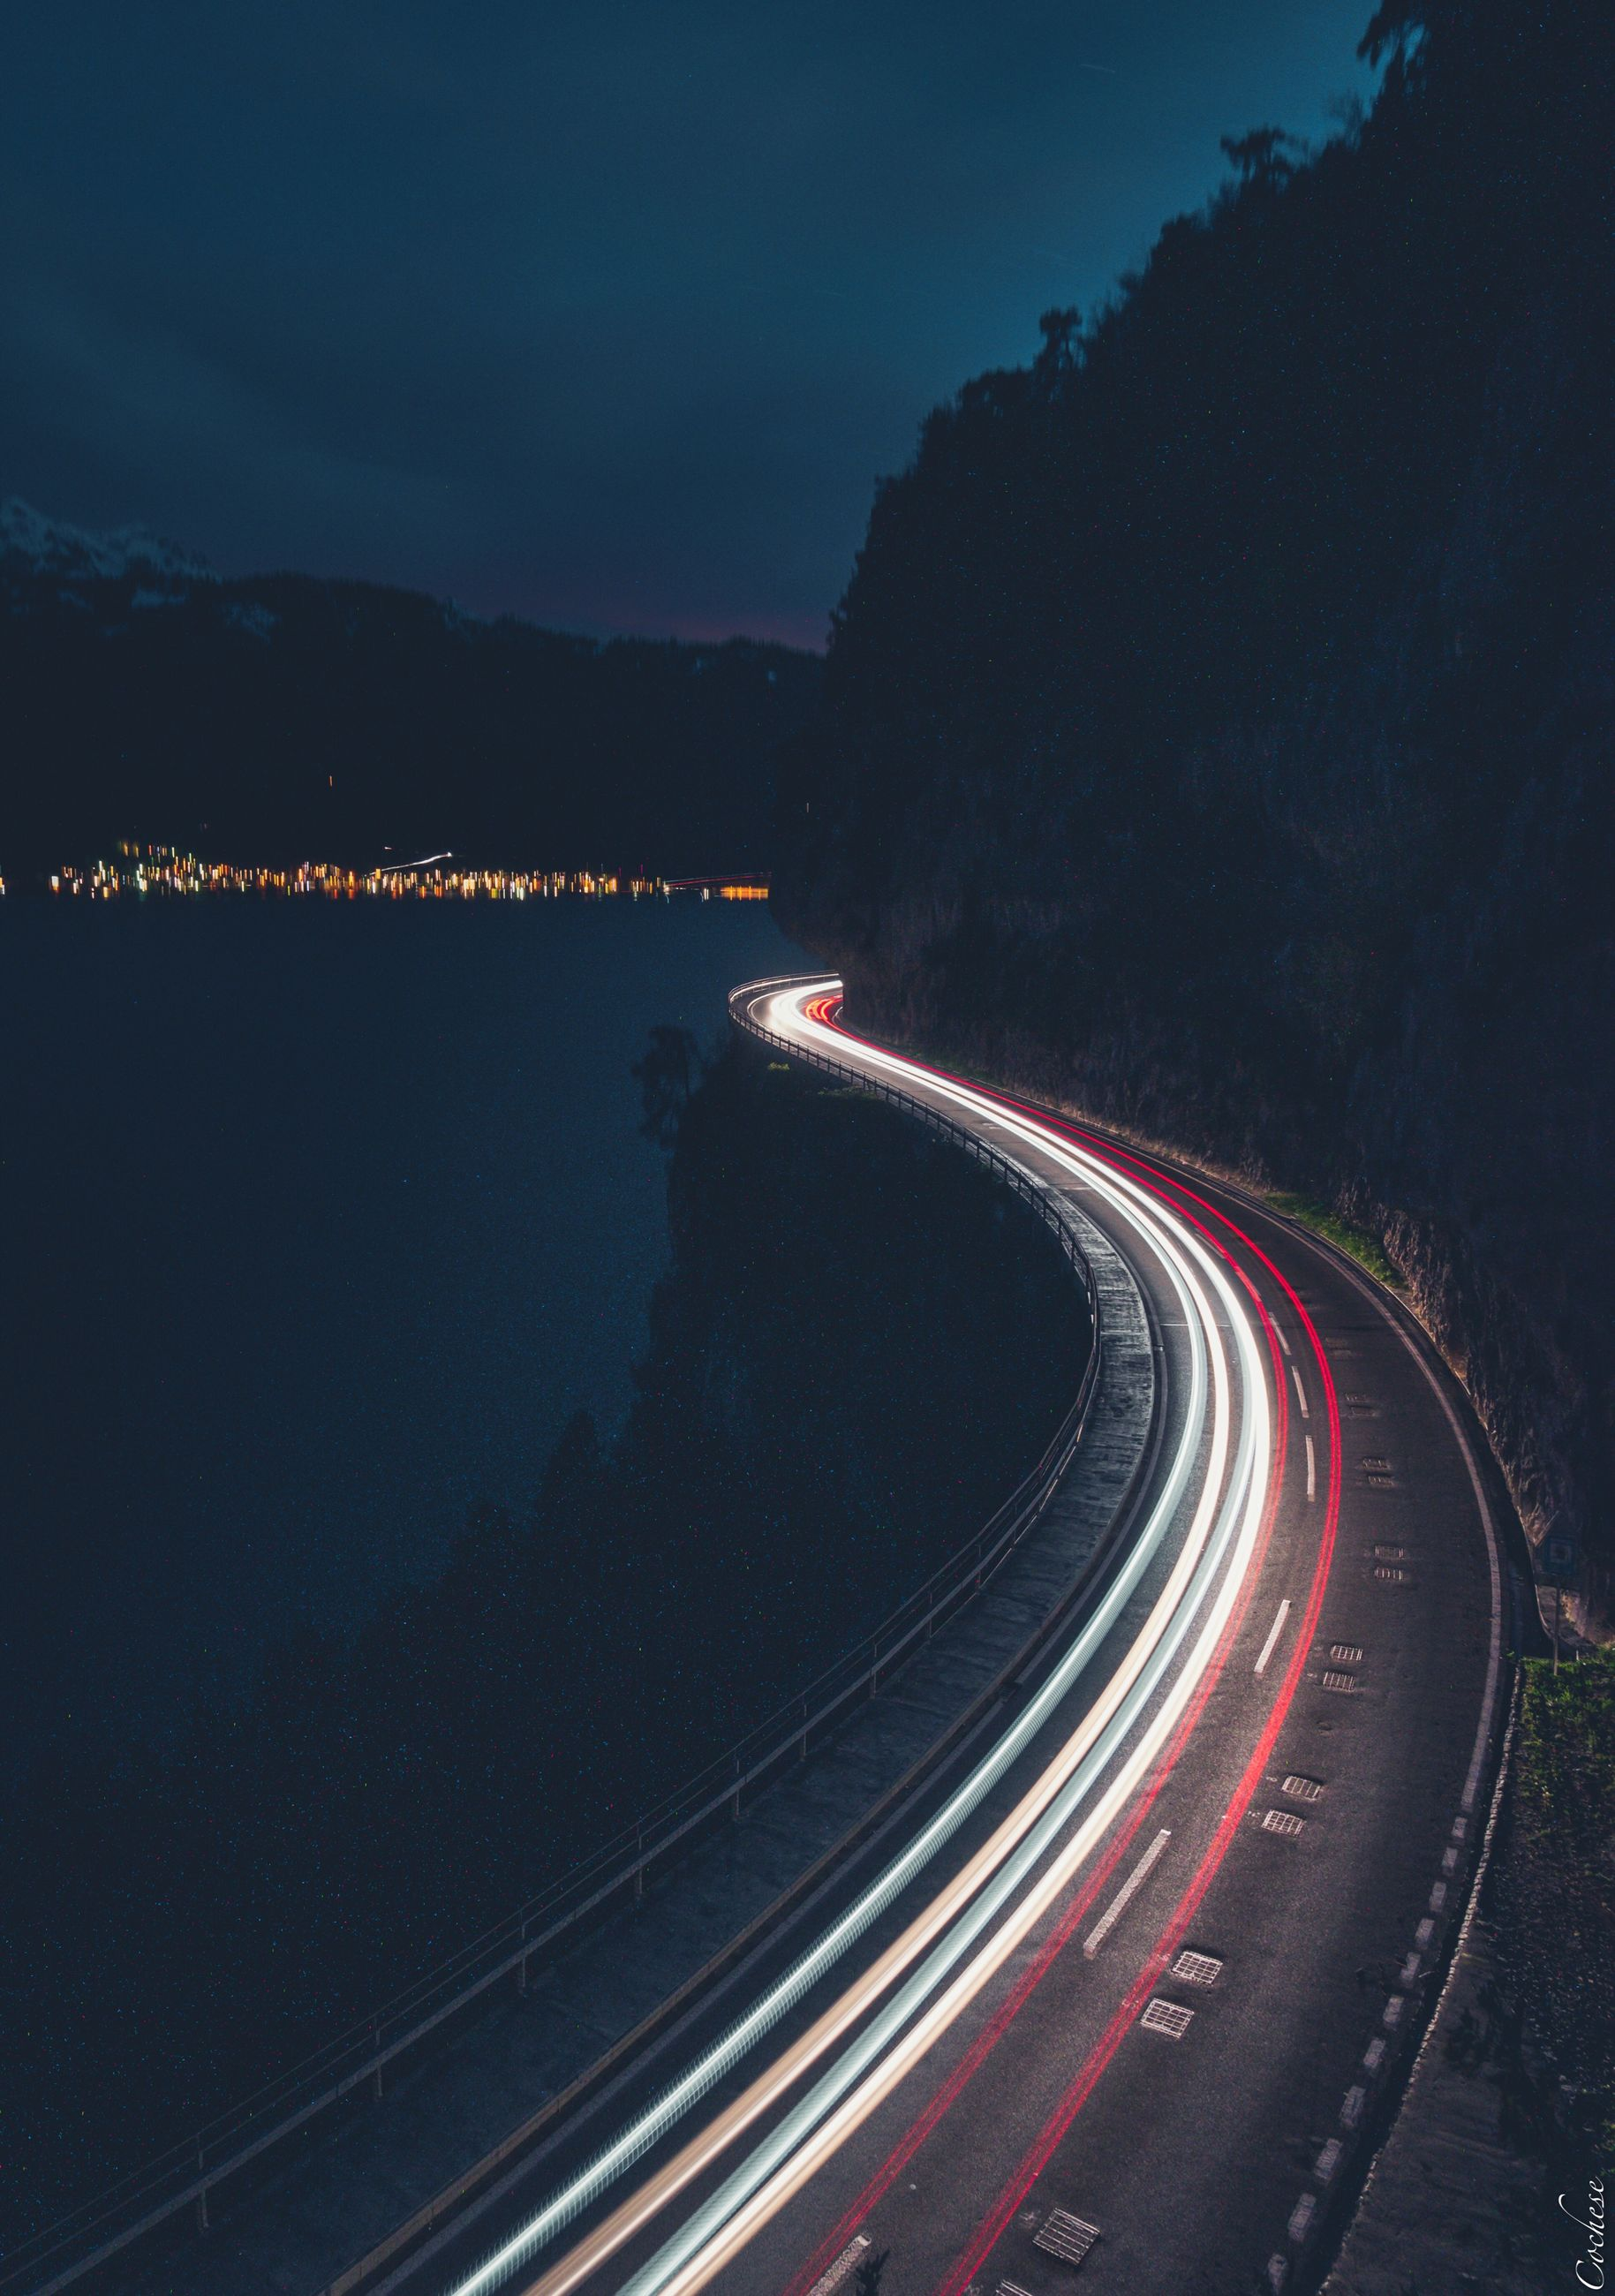 transportation, night, illuminated, light trail, long exposure, road, speed, motion, sky, nature, no people, curve, red, mode of transportation, street, city, blurred motion, tail light, traffic, highway, outdoors